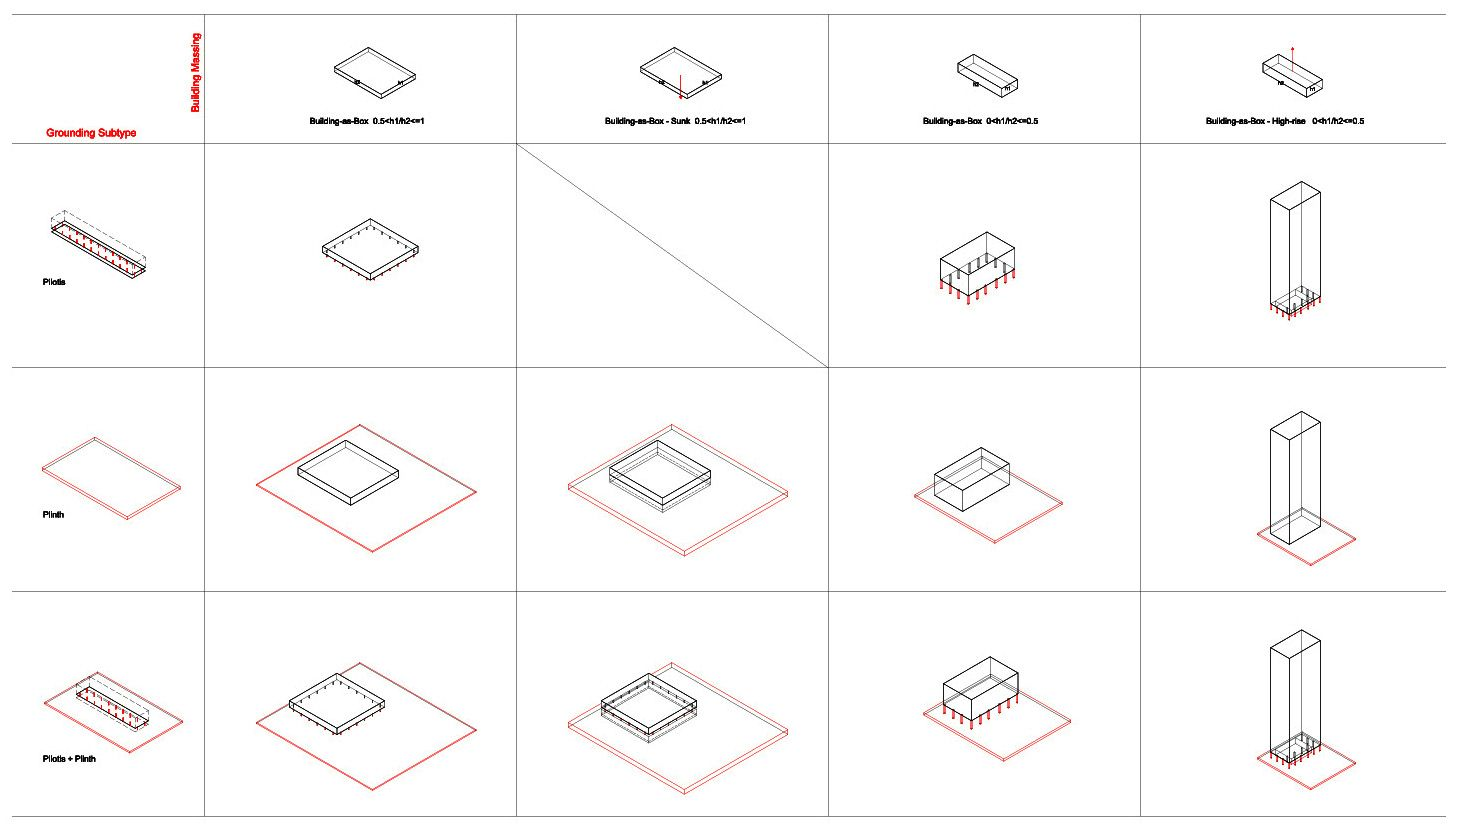 Matrix Typological Transformation Subtypes Of Pavilion